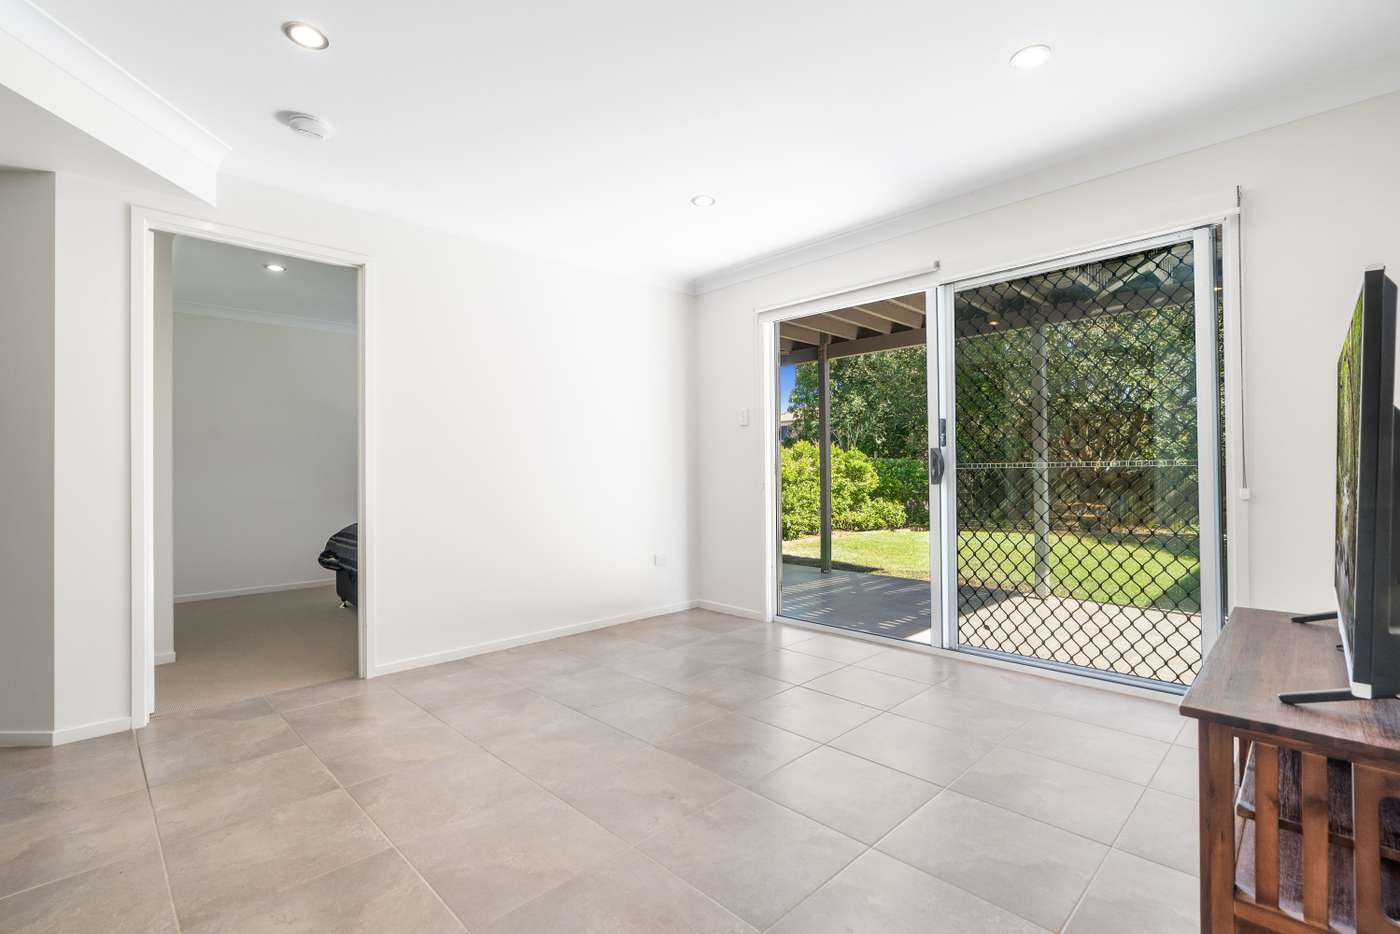 Fifth view of Homely house listing, 77 Drayton Terrace, Wynnum QLD 4178